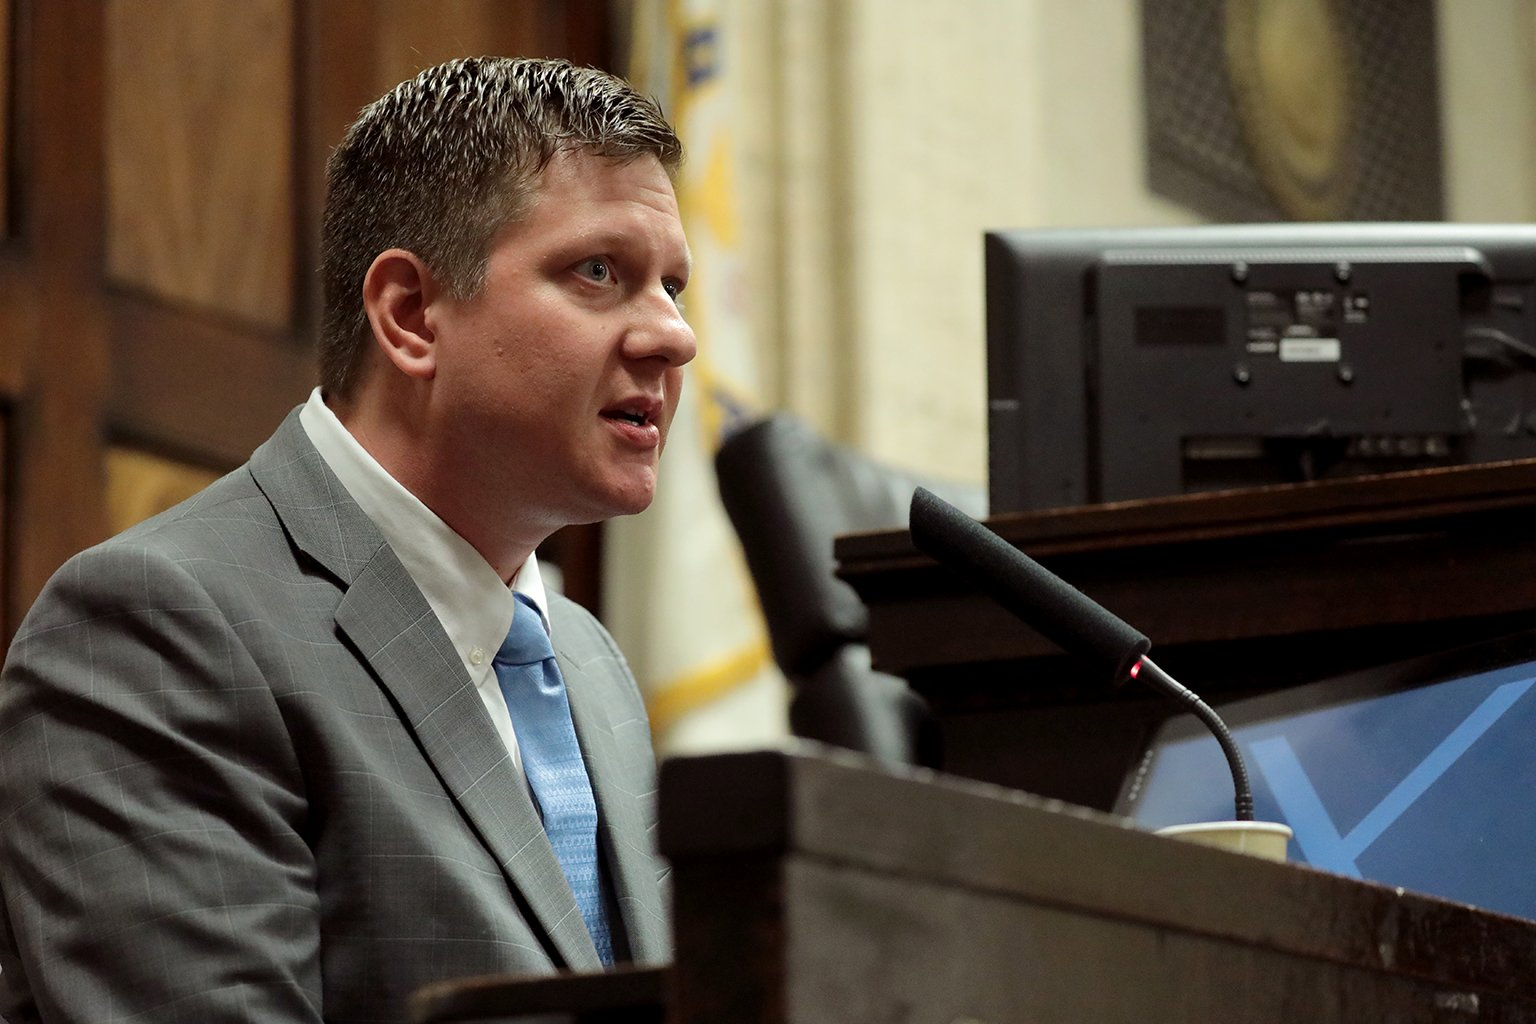 Chicago police Officer Jason Van Dyke takes the stand on Tuesday, Oct. 2, 2018. (Antonio Perez / Chicago Tribune / Pool)